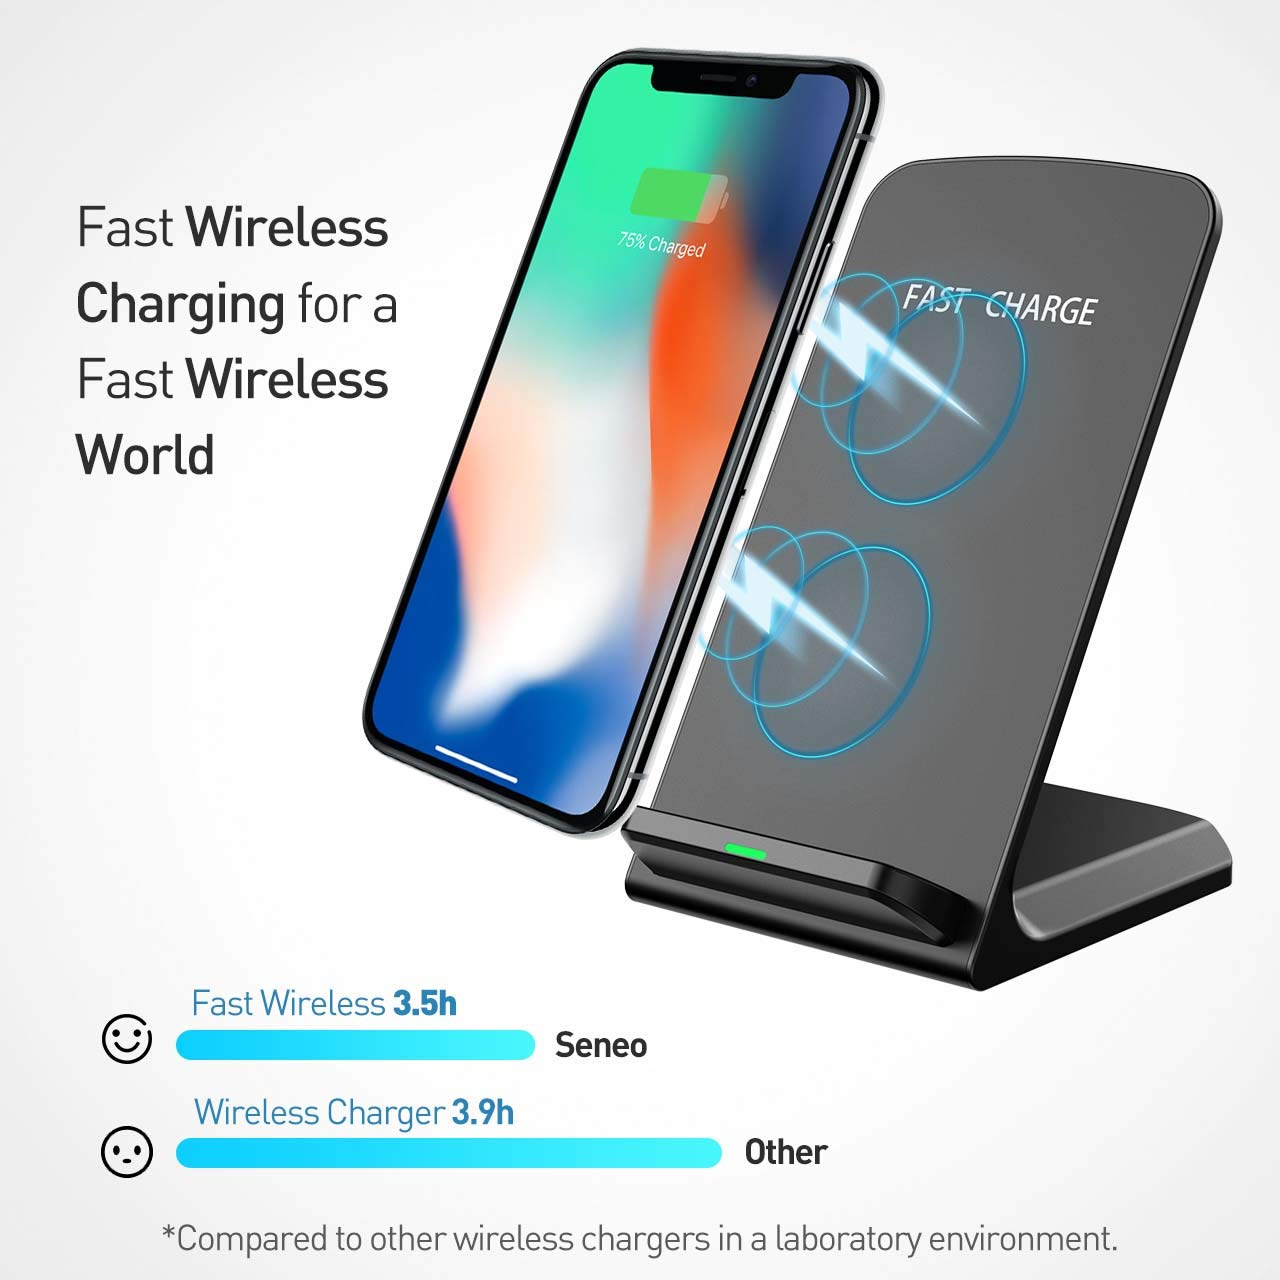 Seneo (Upgraded) Wireless Charger, Qi Certified Fast Wireless Charger Stand with QC 3.0 Adapter for Galaxy S9/S9+ Note 8/5 S8/S8+ S7/S7 Edge S6 Edge+, Standard Qi Charger for iPhoneX/8/8 Plus by Seneo (Image #2)